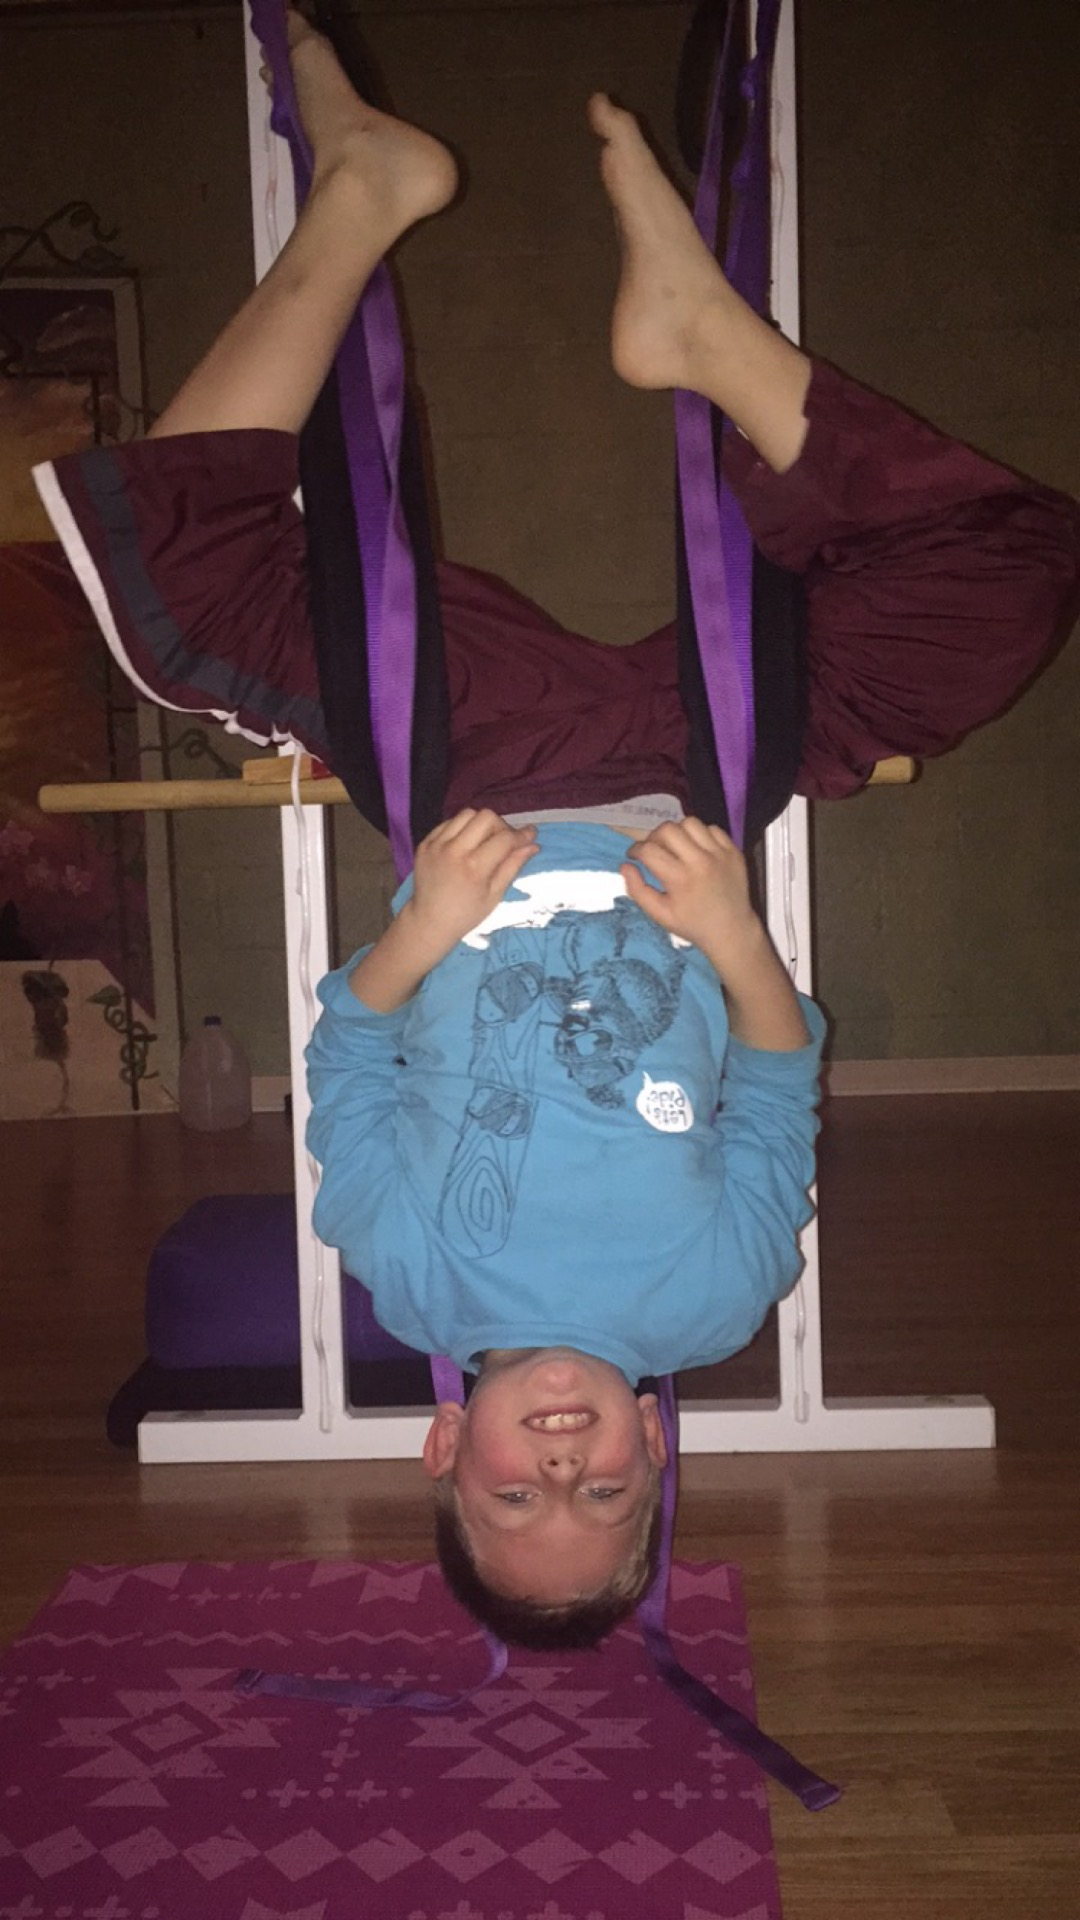 Just hanging around doing some yoga